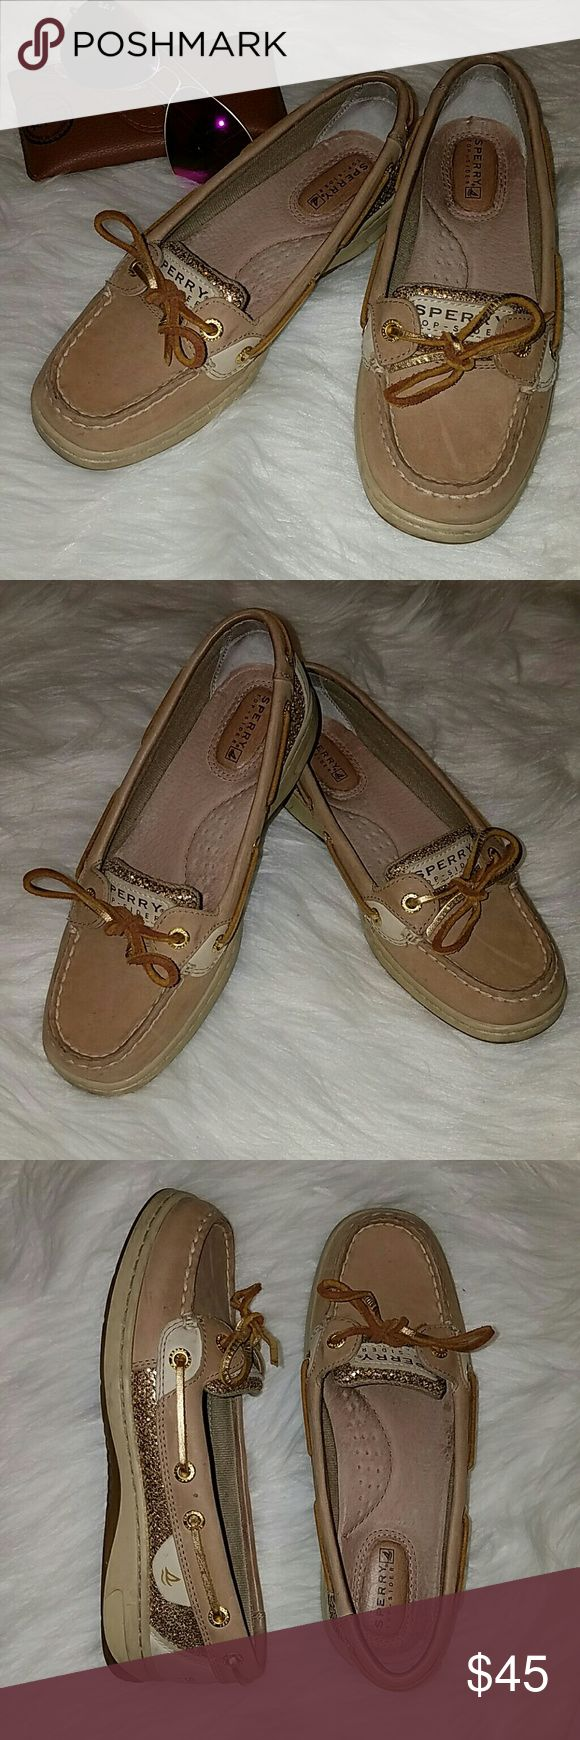 Top Spider Sperry loafers Top Spider Sperry loafers size 5.5 gold accents. Great condition worn only once.  No trades. Sperry Shoes Flats & Loafers